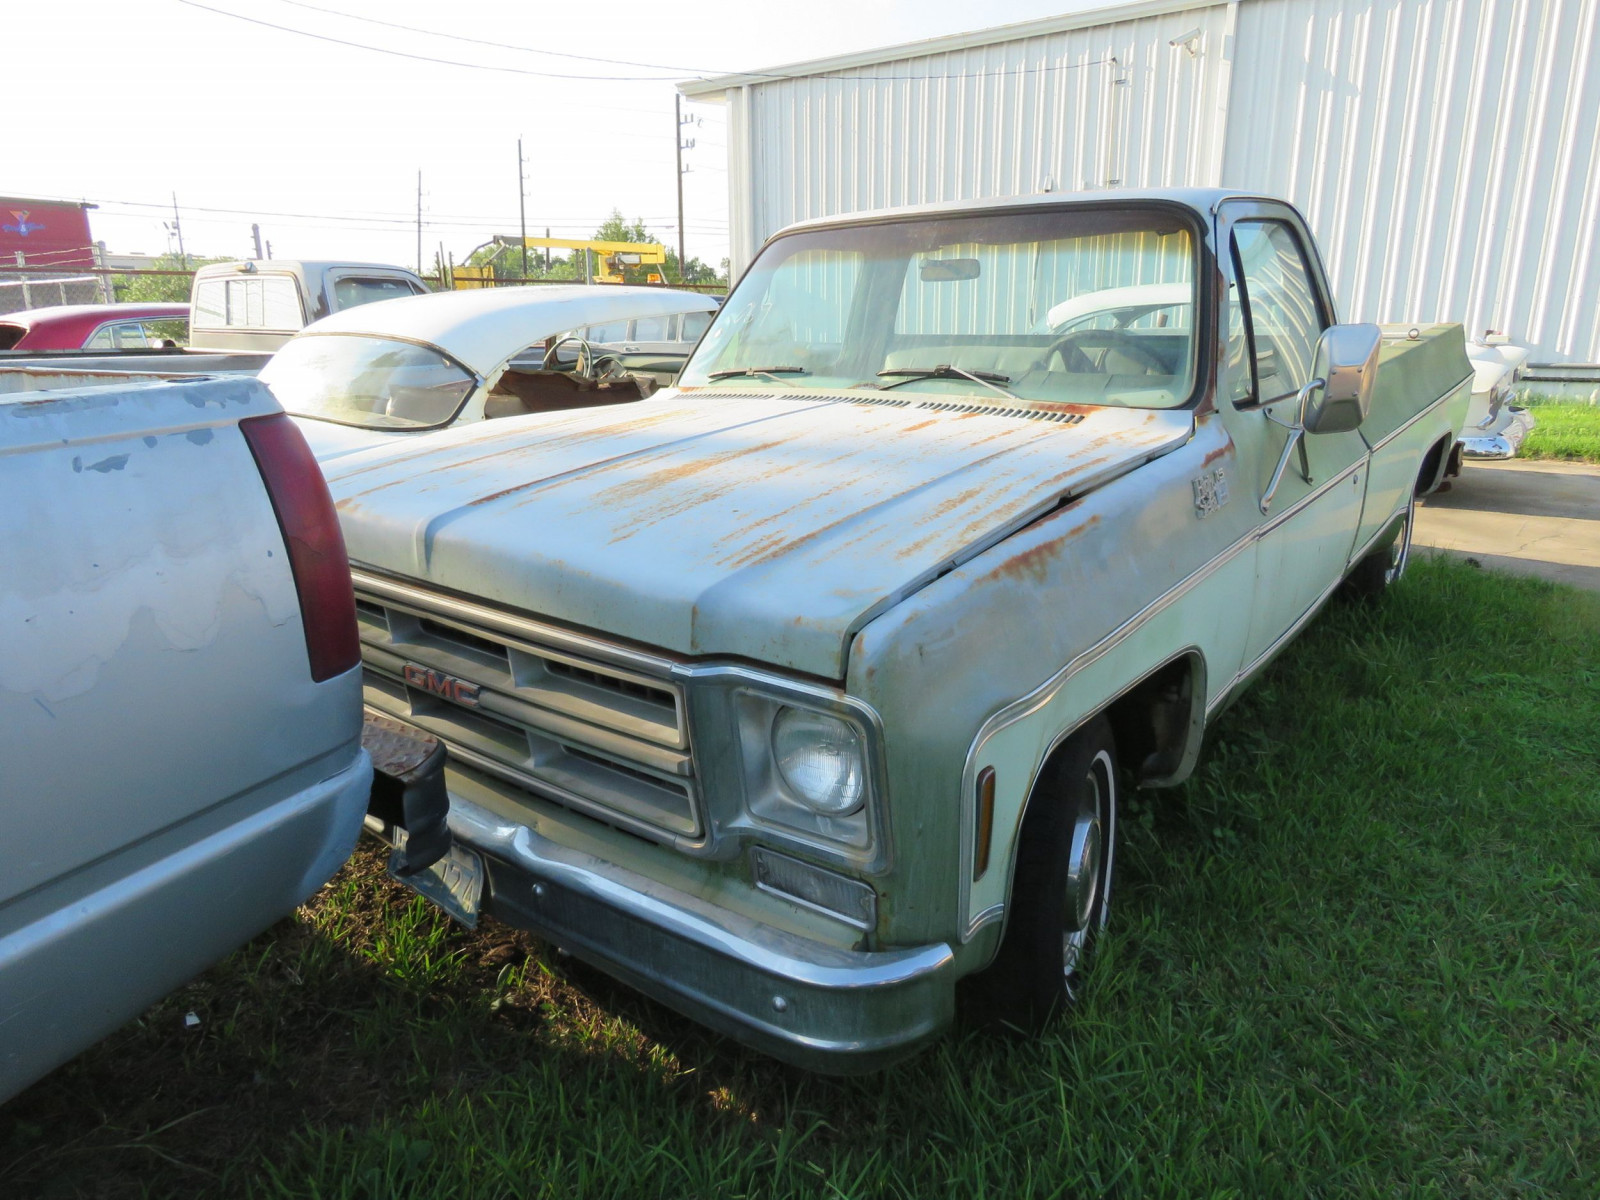 1976 GMC High Sierra 1/2 ton Pickup - Image 1